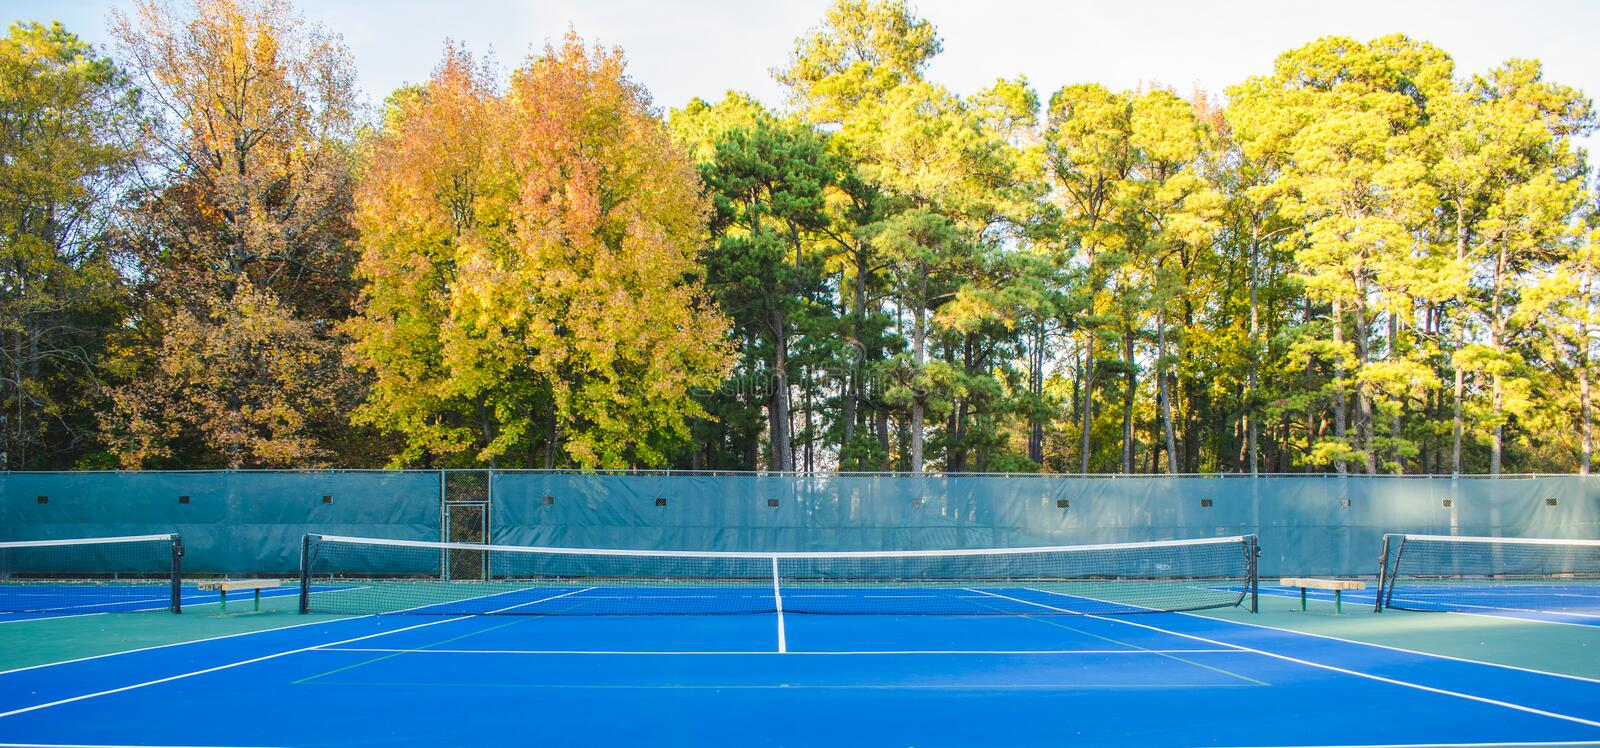 Asphalt Tennis Courts Background extérieur photo libre de droits